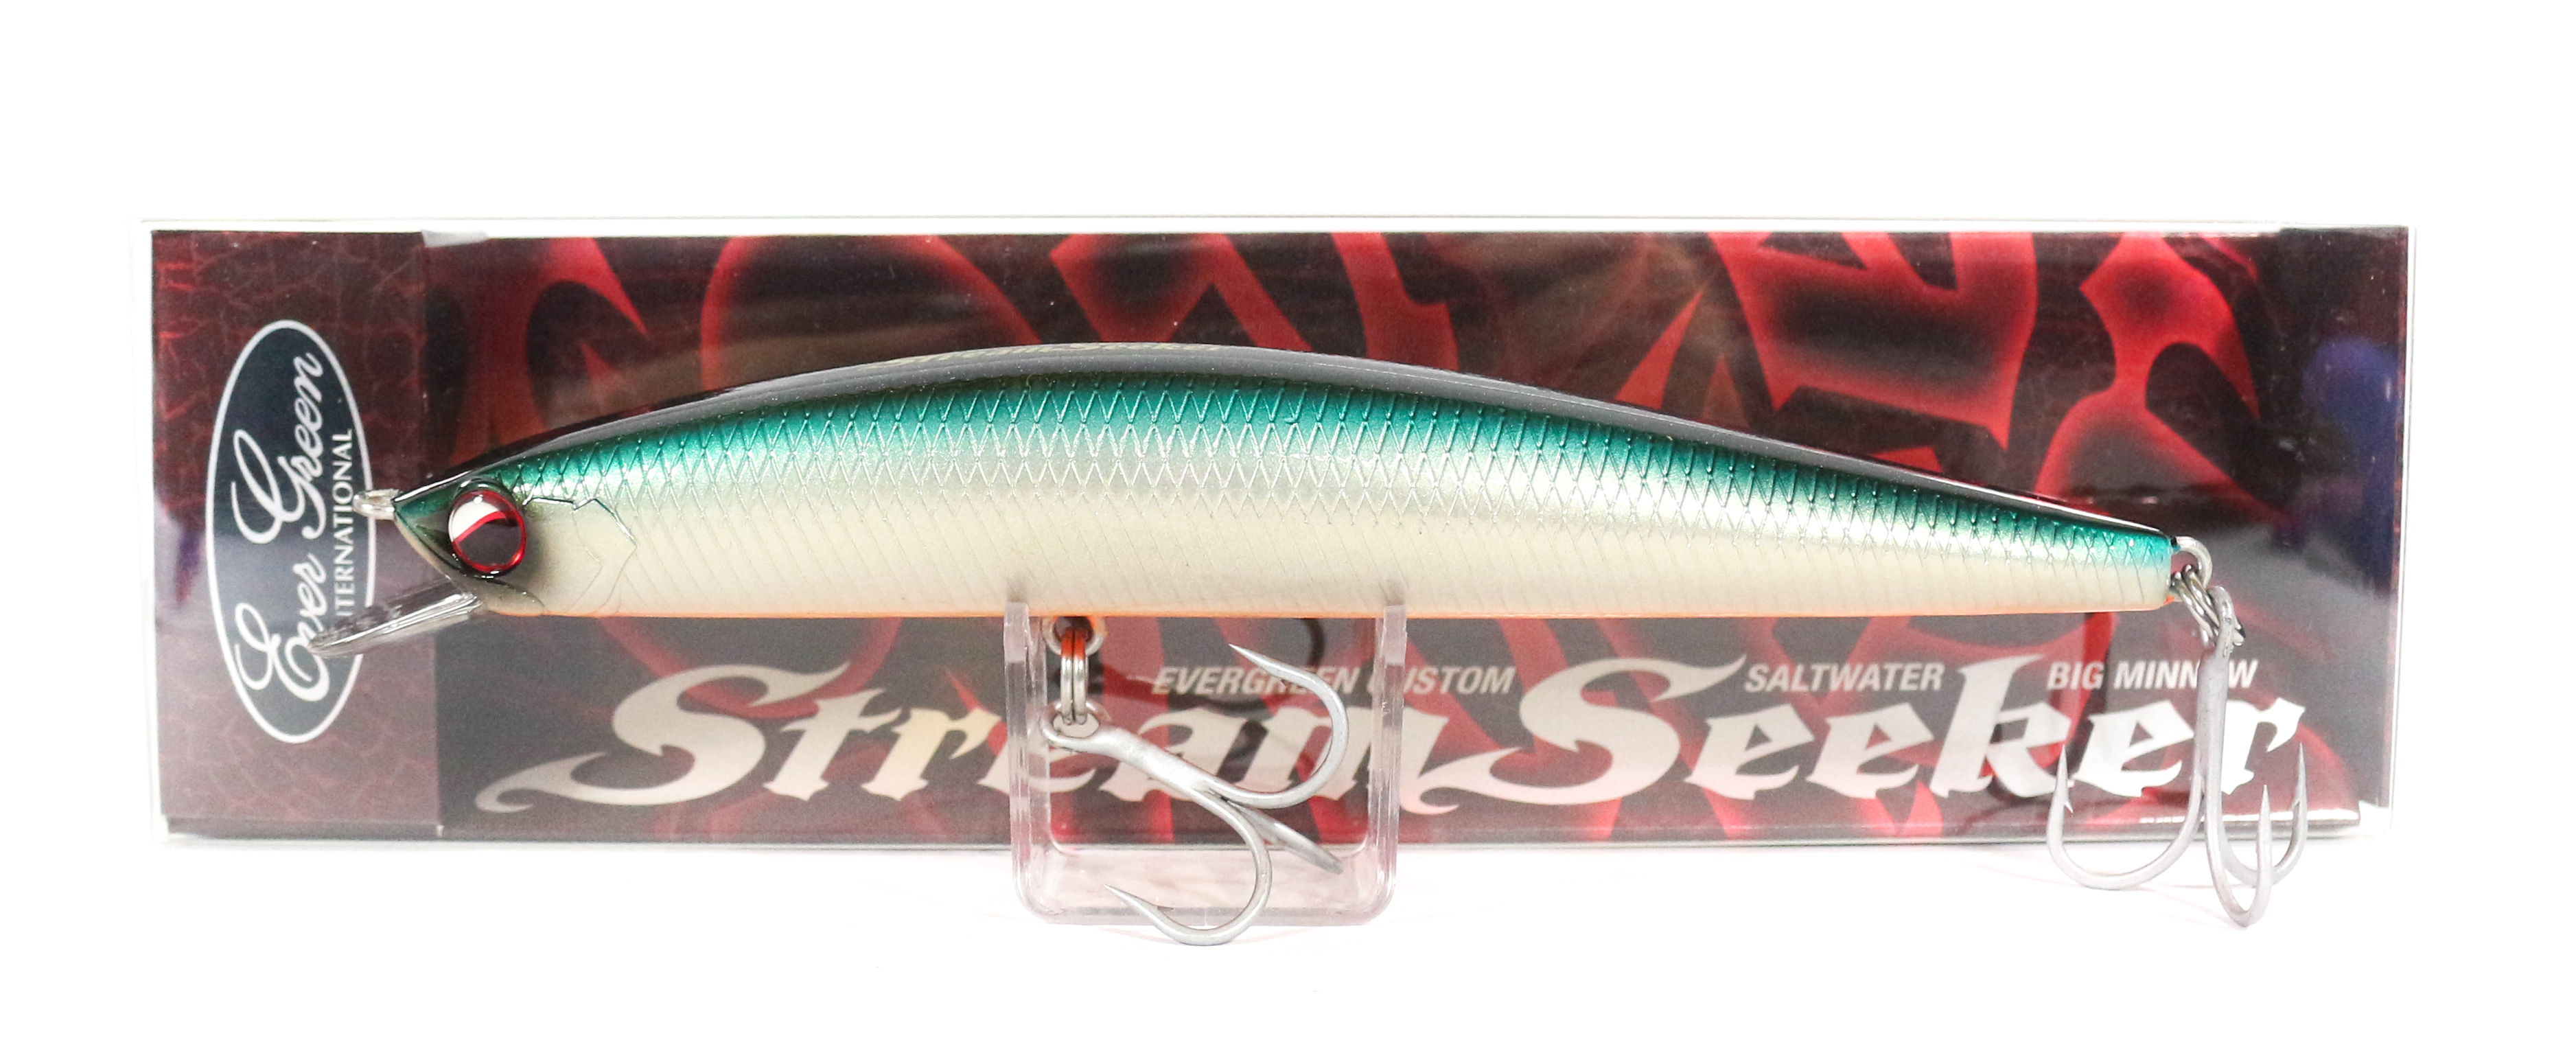 Sale Evergreen Stream Seeker 145 Floating Lure 770 (7668)